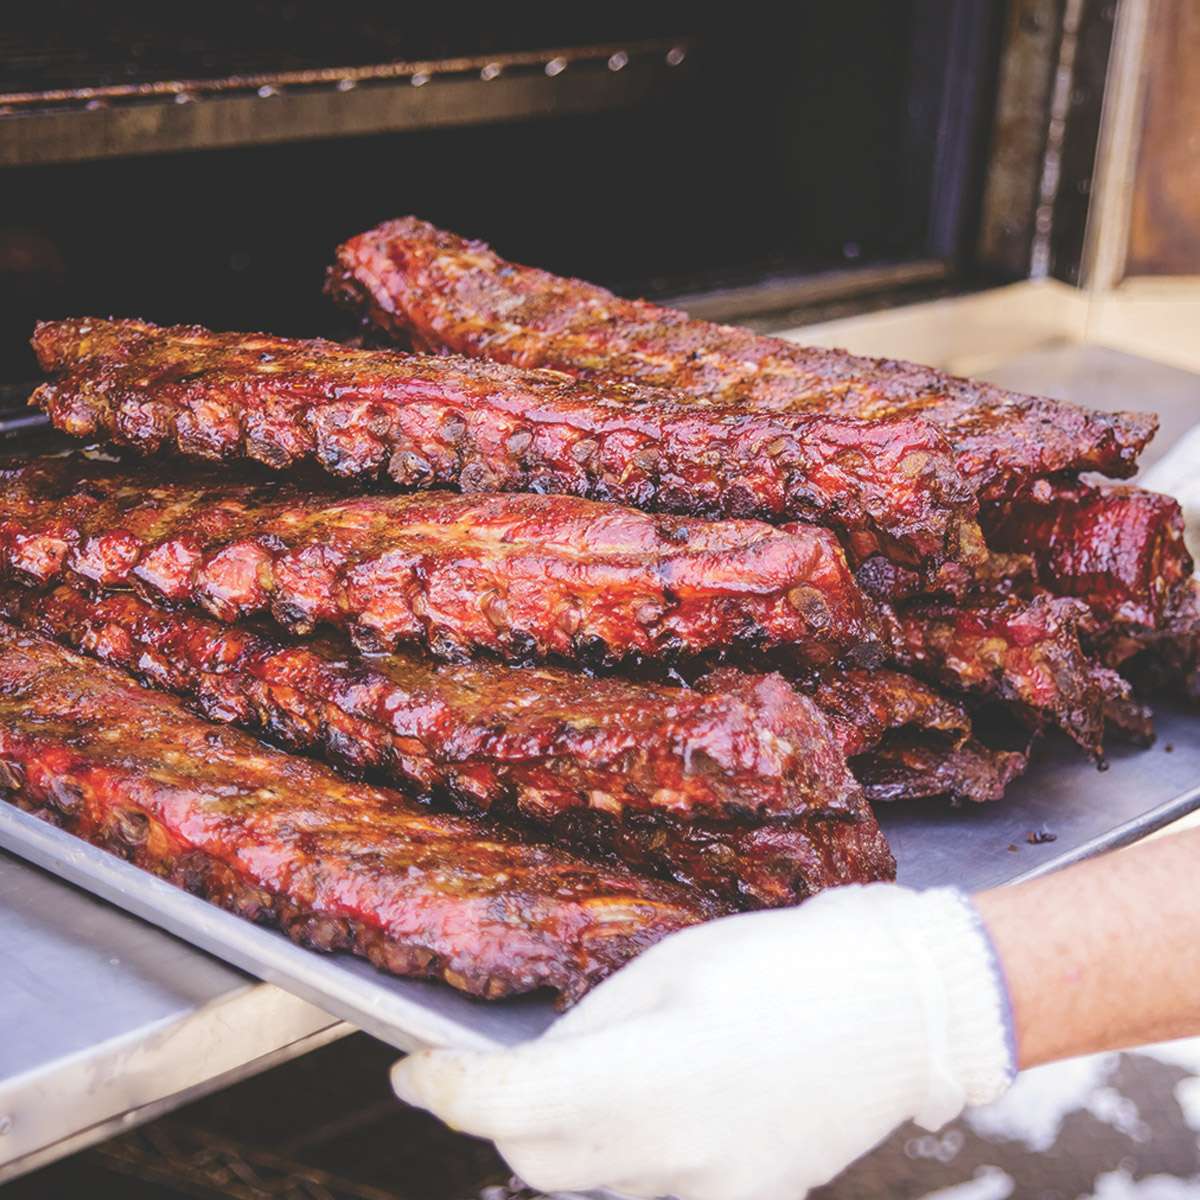 Pappy-s-ribs-product1.jpg